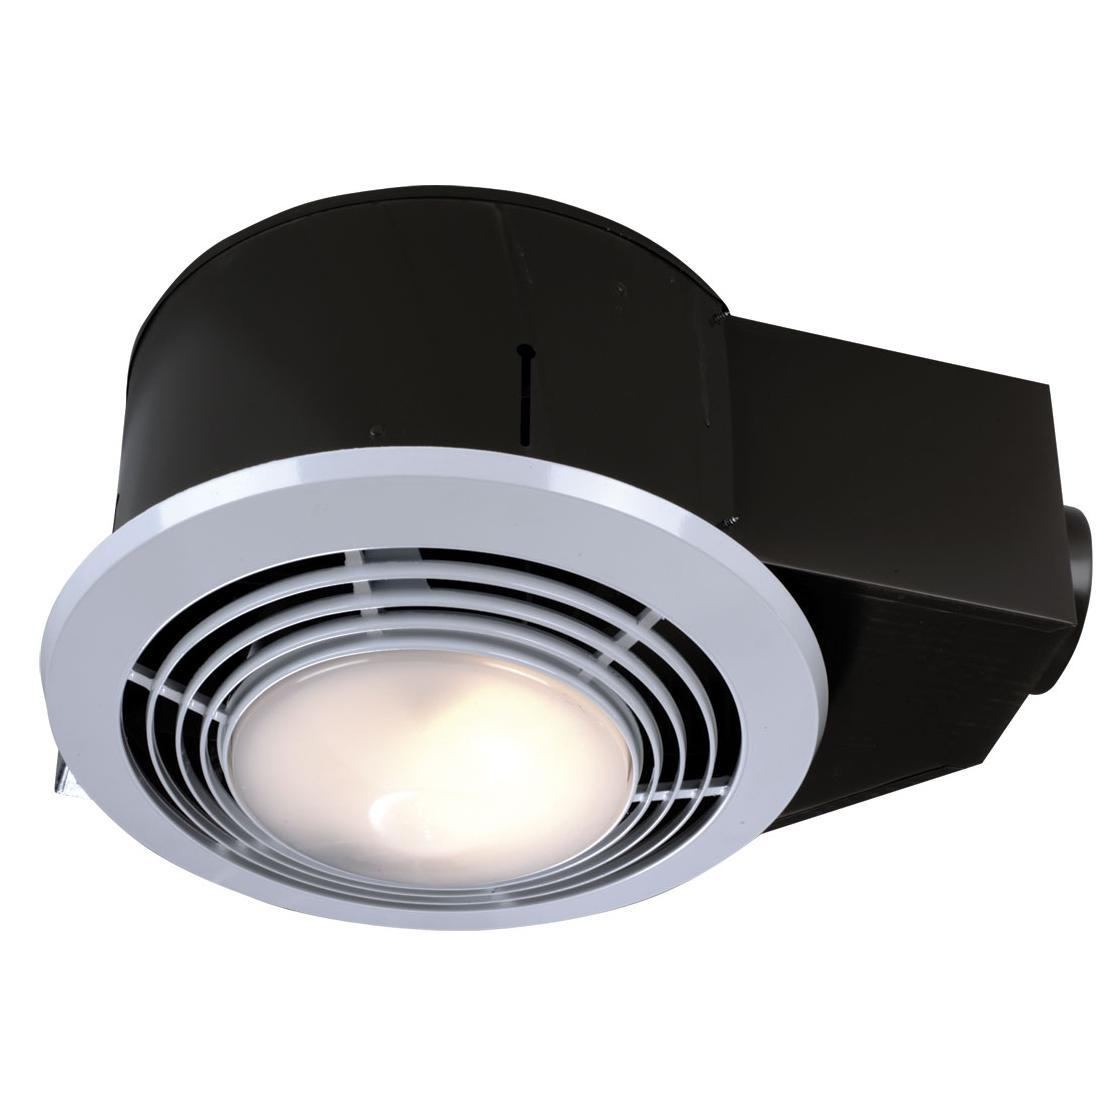 Broan Nutone 9093wh Exhaust Fan Heater And Light Combo